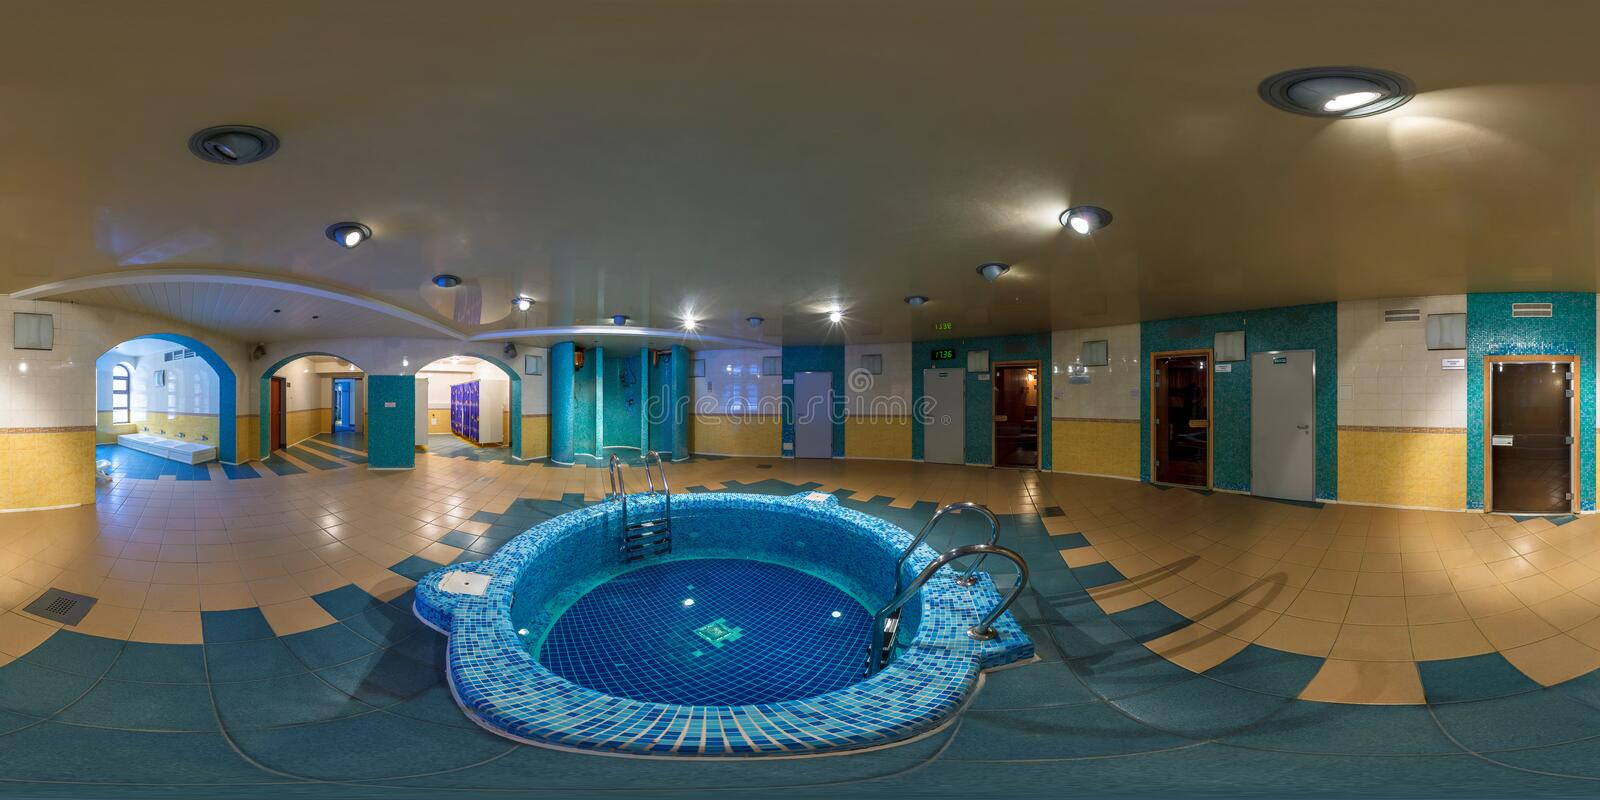 GRODNO, BELARUS - FEBRUARY 21, 2013: Full 360 degree panorama in equirectangular equidistant spherical projection in interier hall. Swimming pool bathroom stock photos